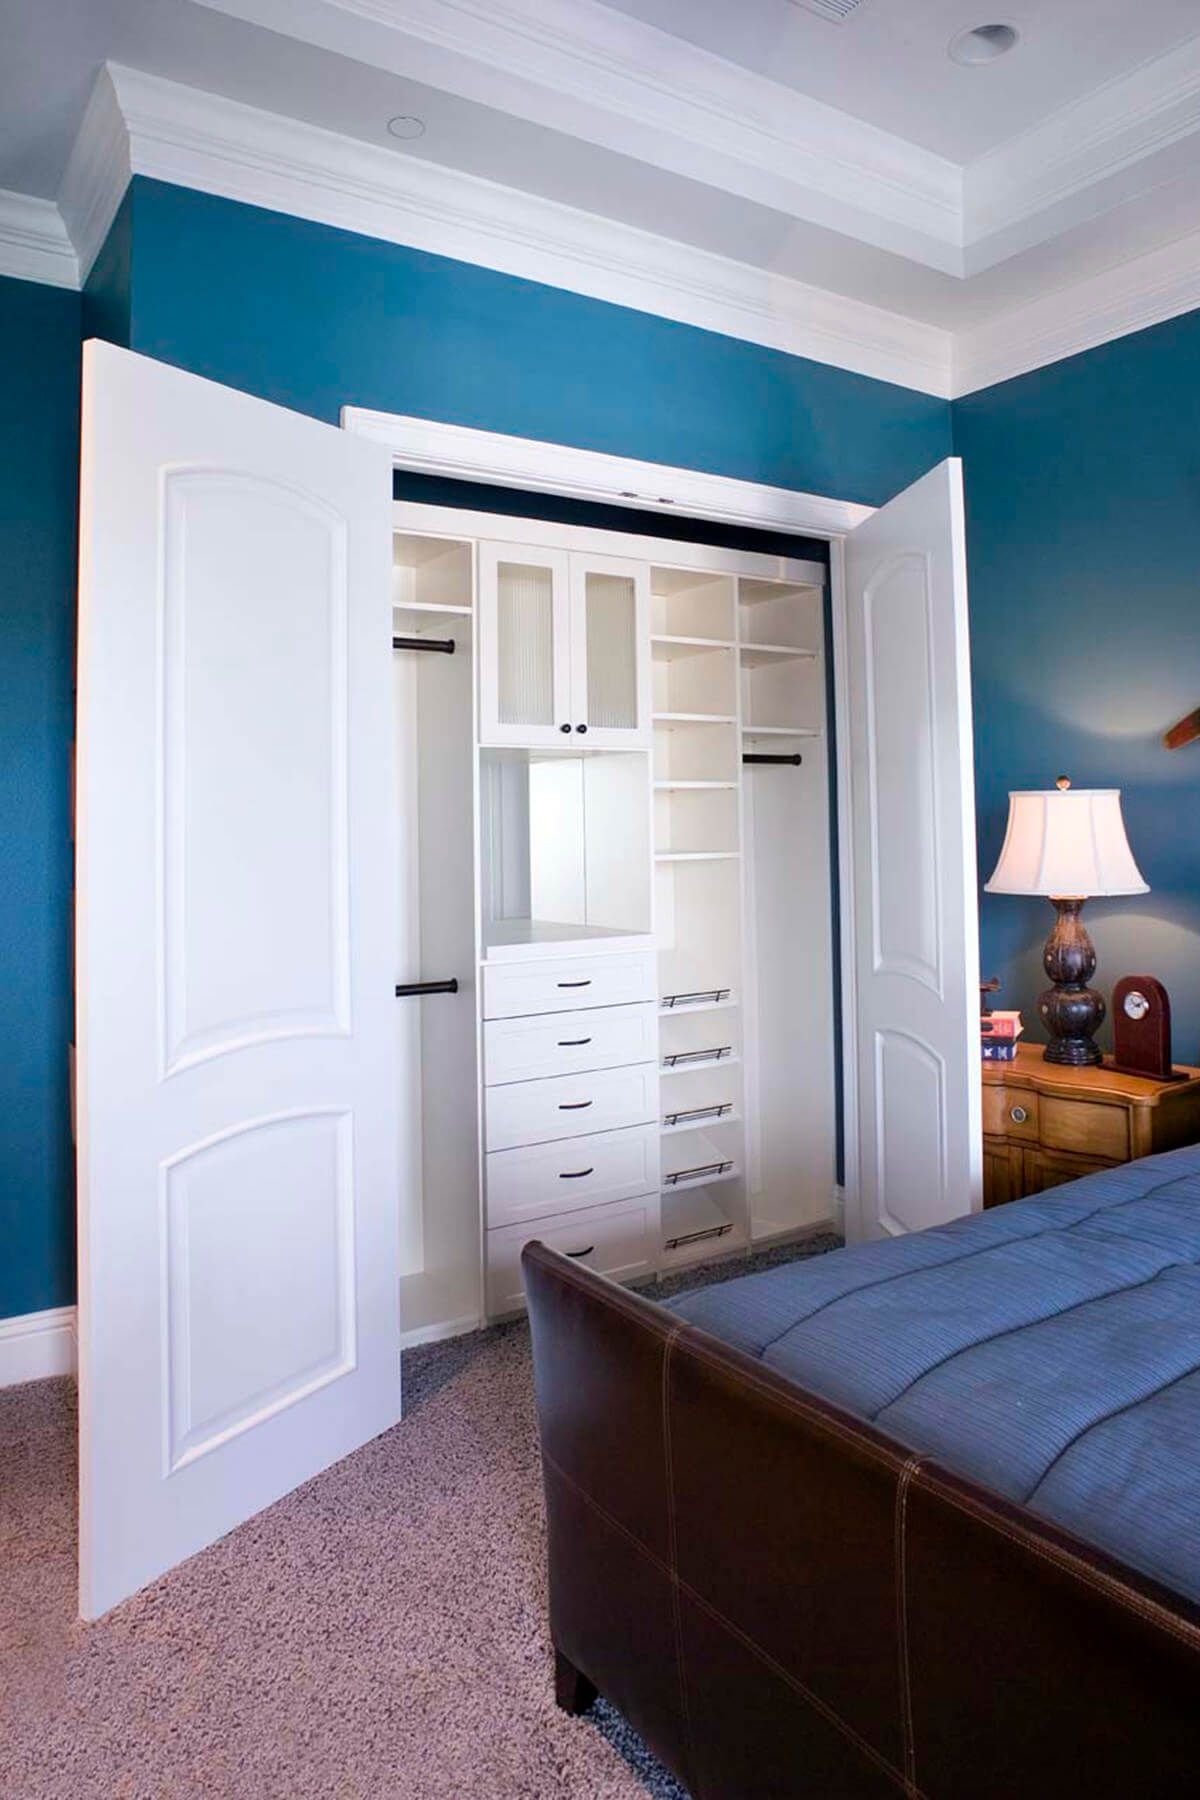 This Bright And Cheery Reach In Closet Provides Wonderful Storage Solutions For Any Bedroom